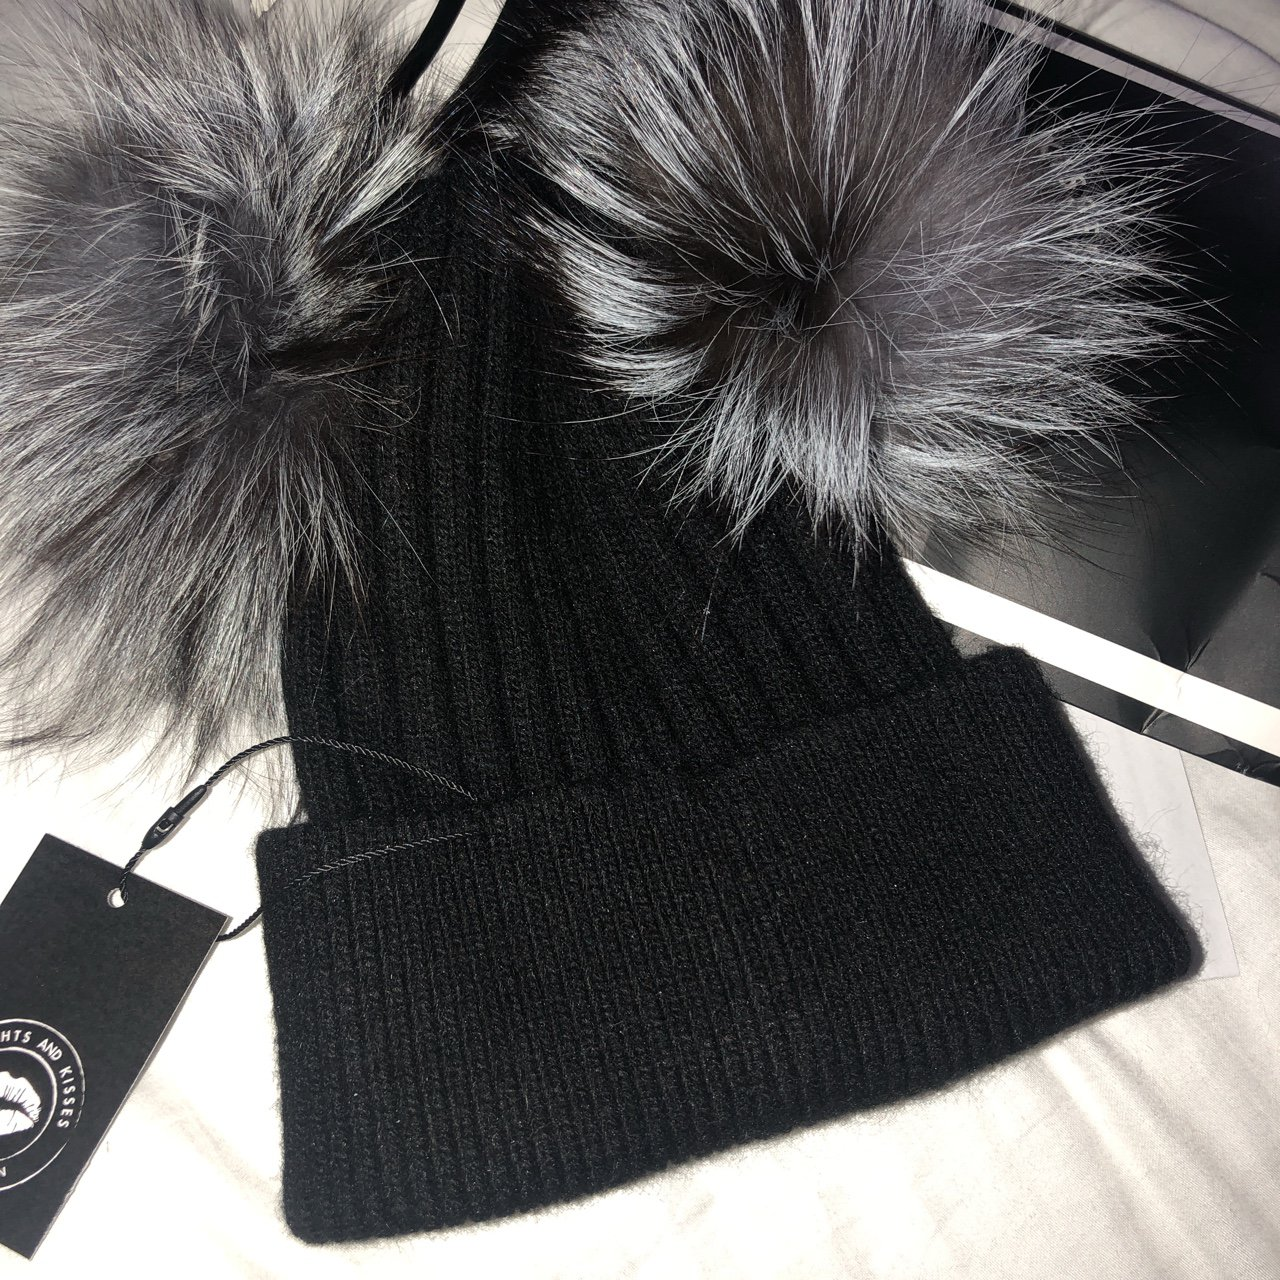 13c839258a9 Noughts and Kisses double bobble hat. Real fur. Black with - Depop